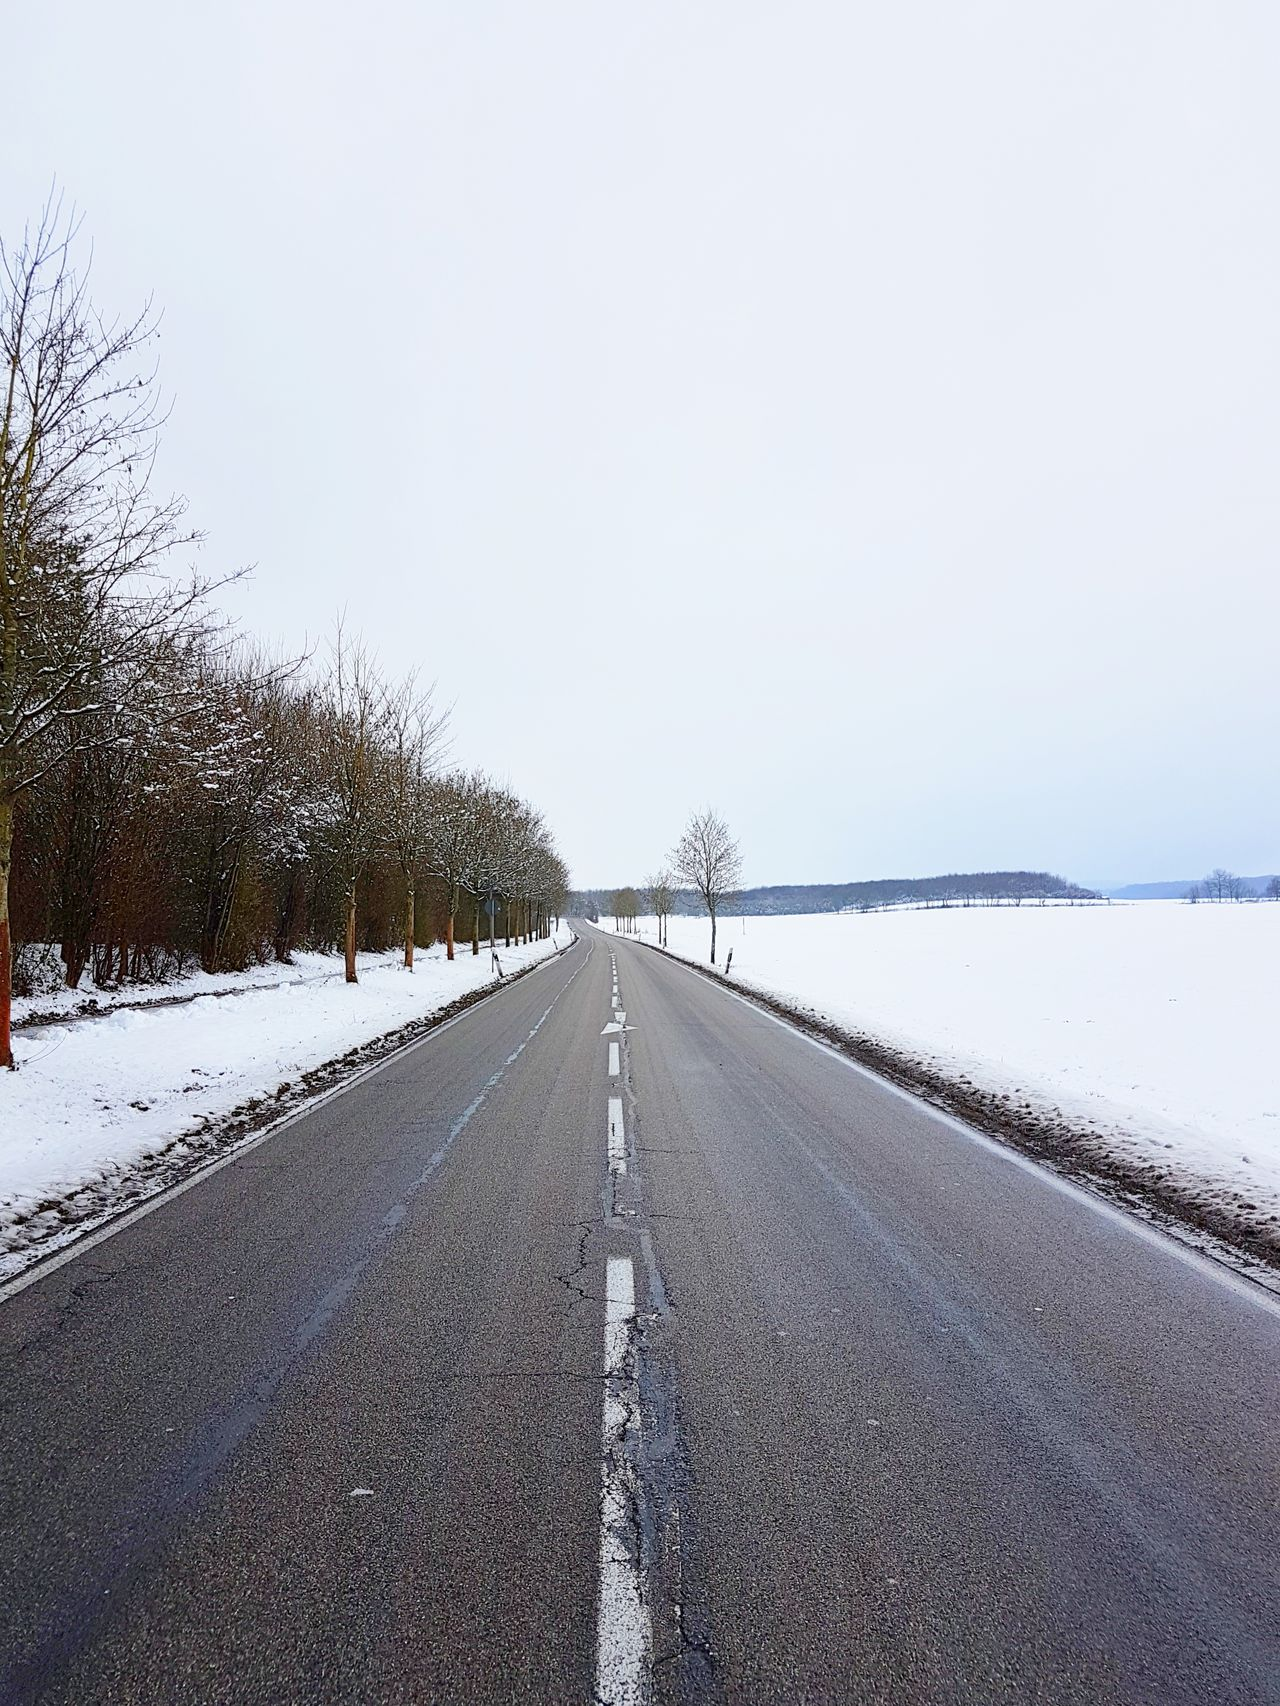 ...made it to Weilerbach. Winter Landscape Road Snow Schnee